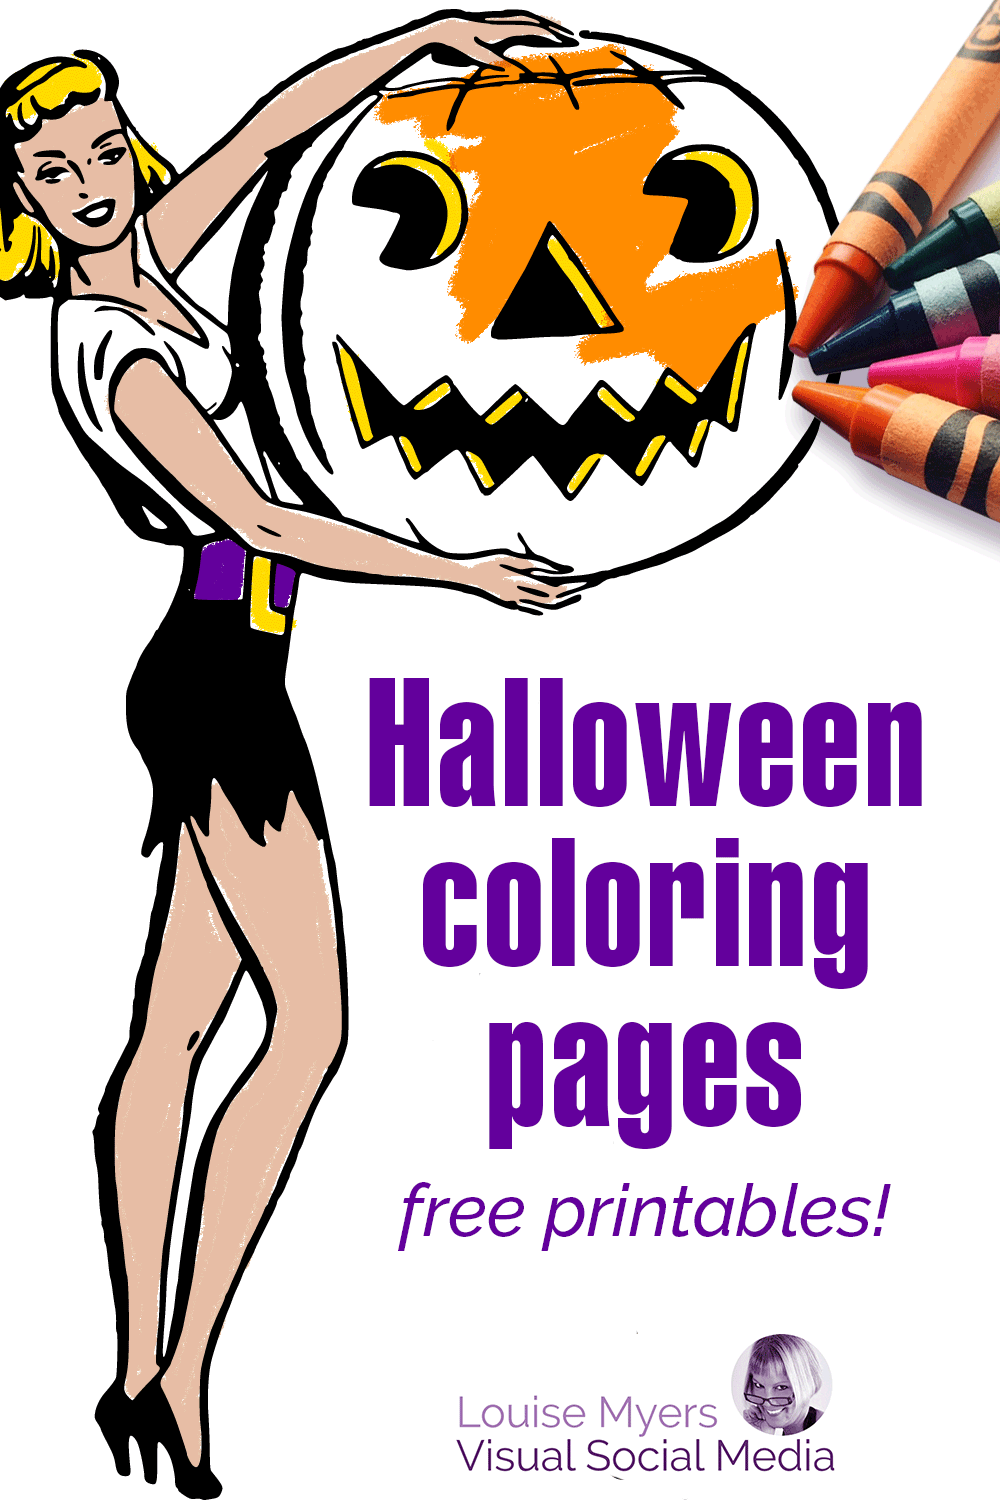 text Halloween coloring pages free printables with crayons and drawing of lady holding pumpkin in background.